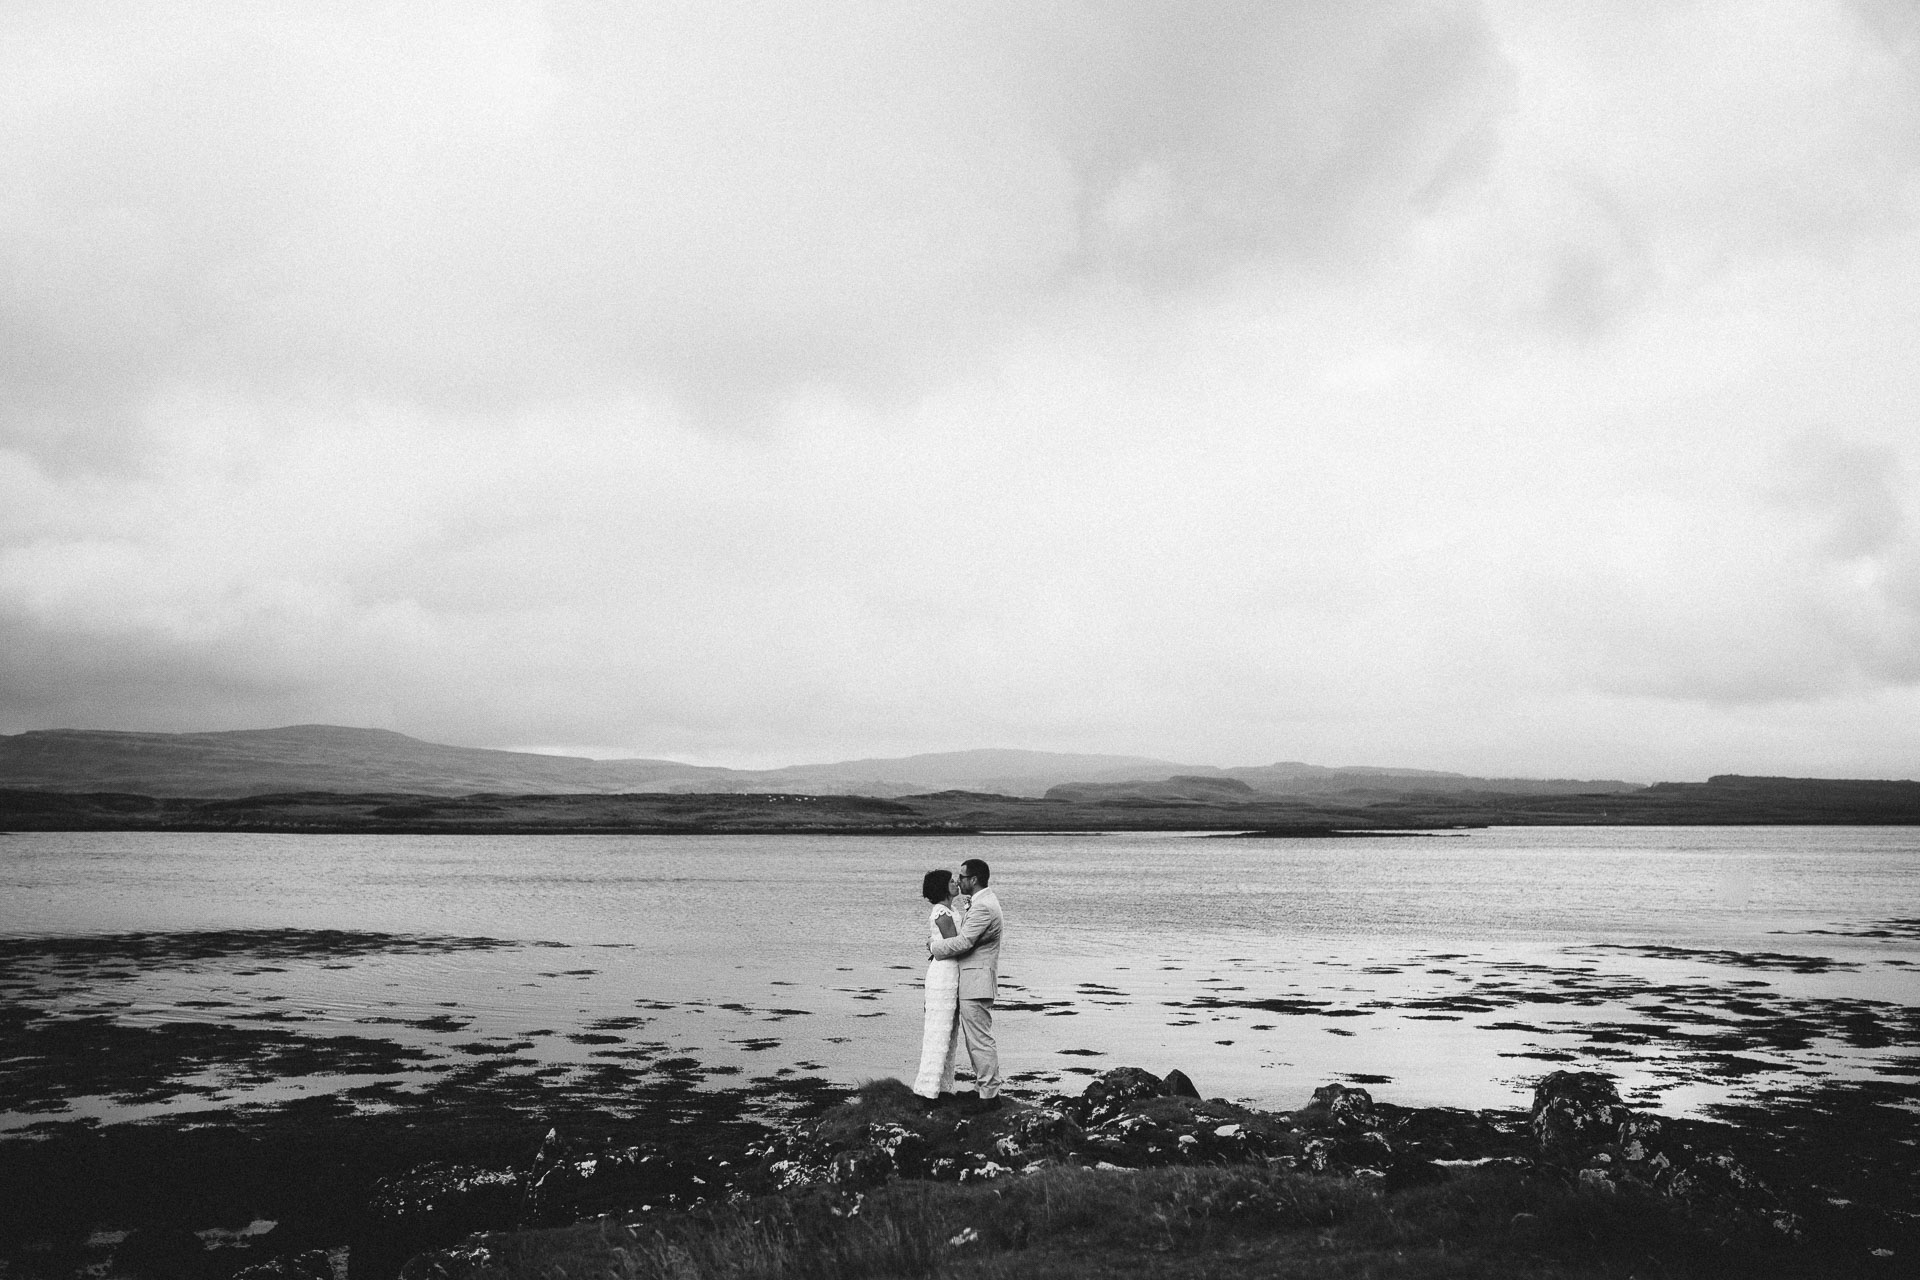 Megan_Matt_Elopement_IntimateWedding_Scotland_IsleOfSkye_JeanLaurentGaudy_116